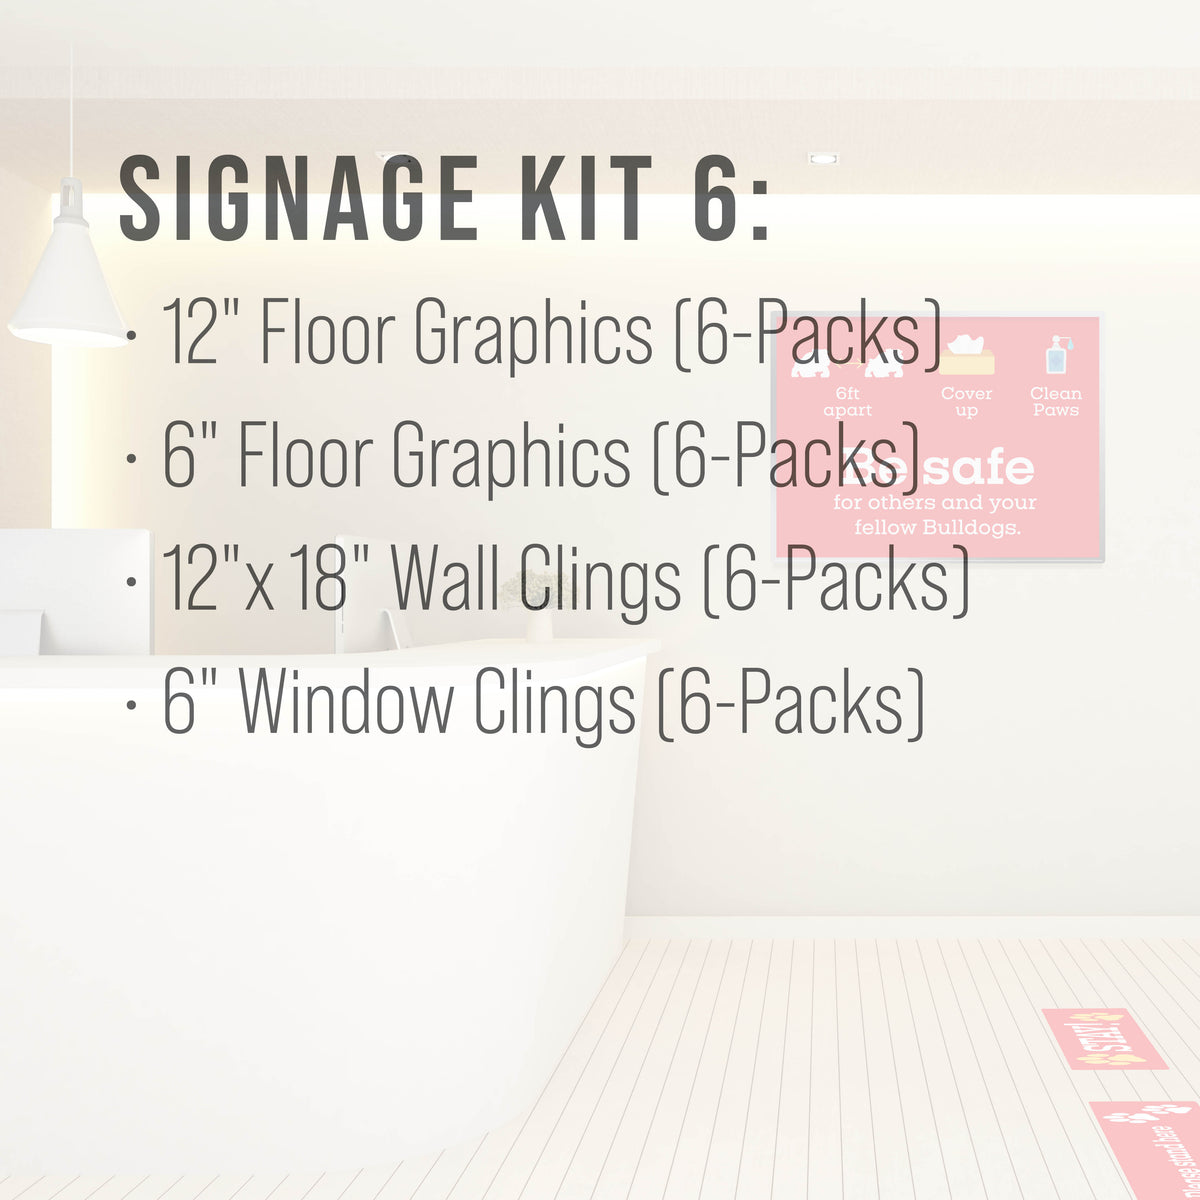 Signage Kit 6 - includes 6-Packs of each item.